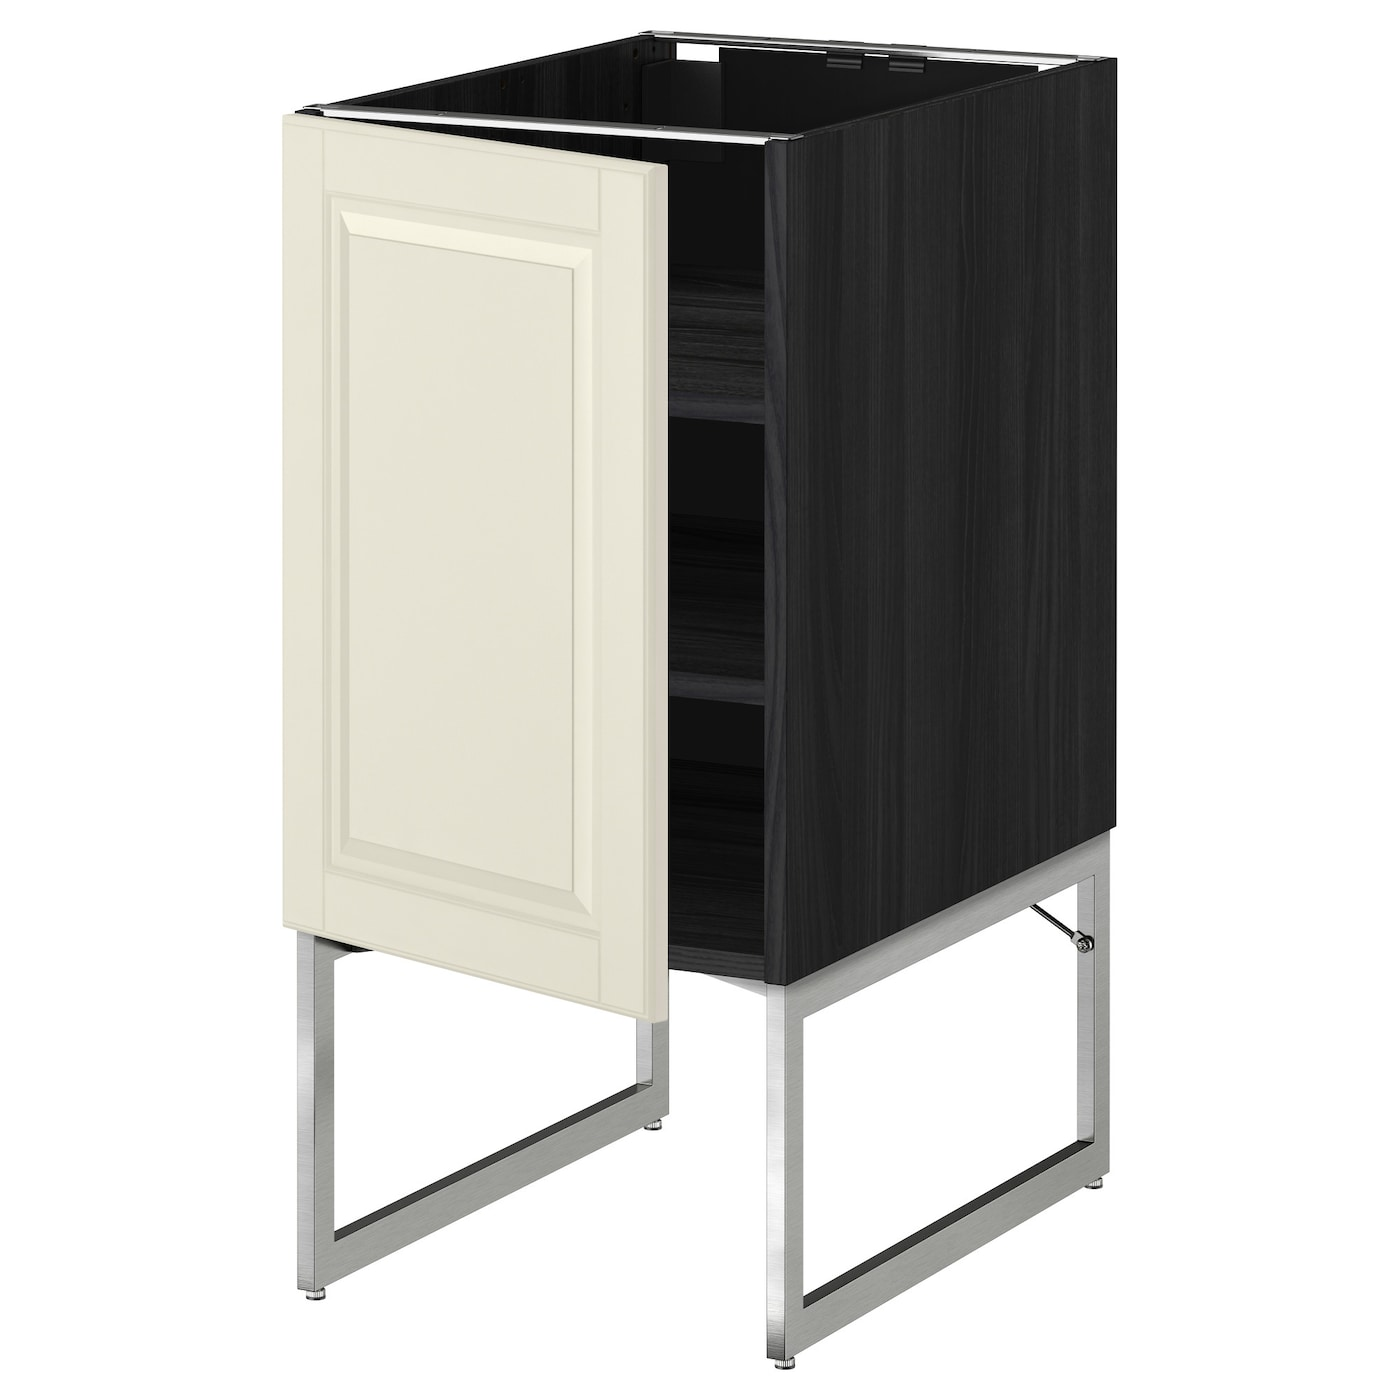 Metod Base Cabinet With Shelves Black Bodbyn Off White 40x60x60 Cm Ikea